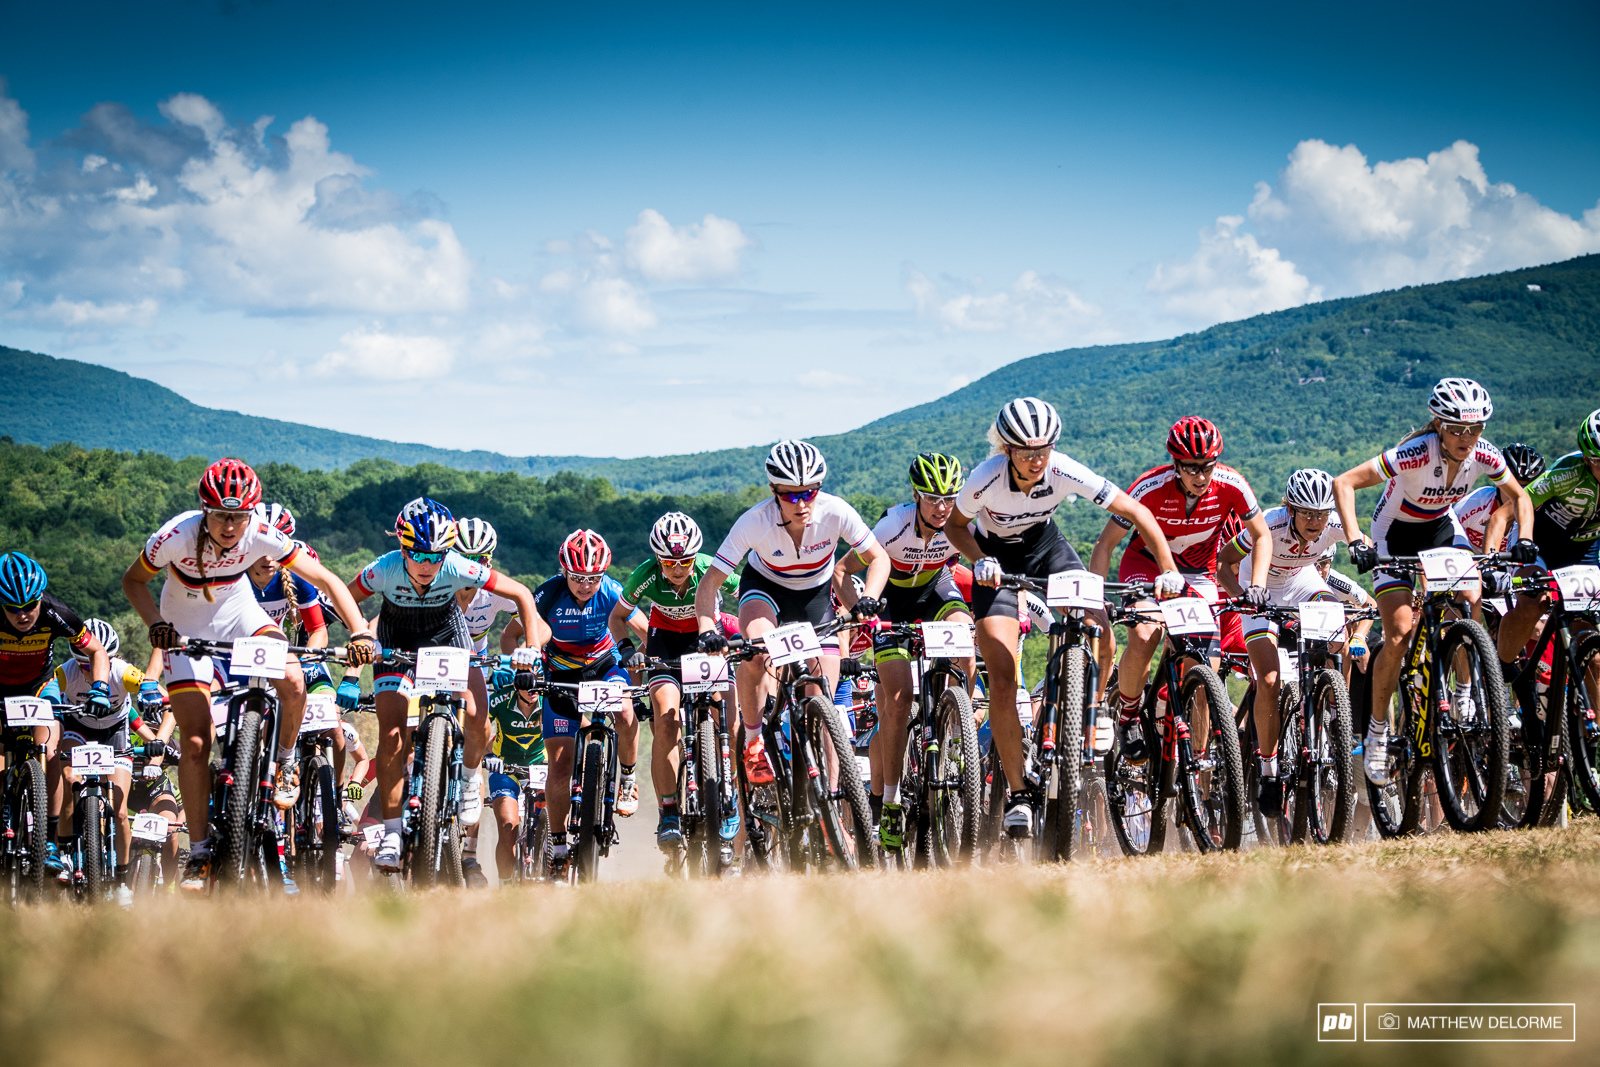 Womens start all up hill. Then things got wild and the field was blown apart. It made for some very interesting racing.